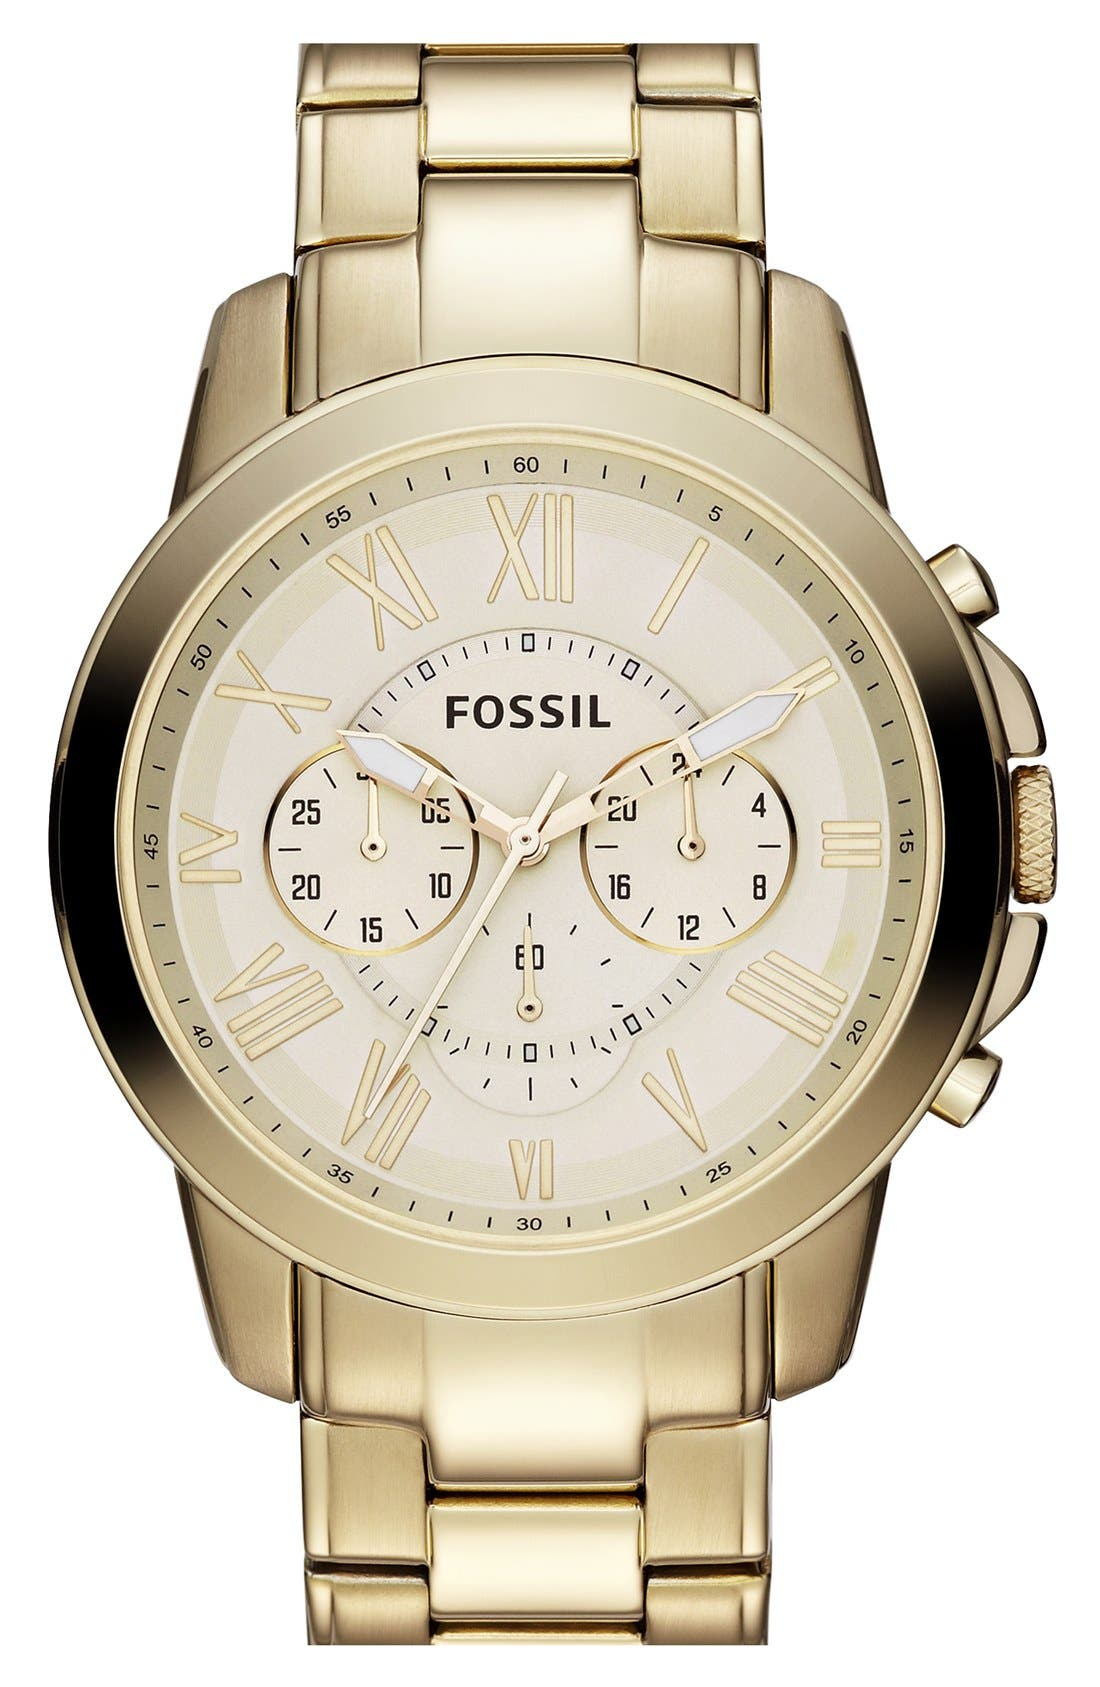 Main Image - Fossil 'Grant' Chronograph Bracelet Watch, 44mm